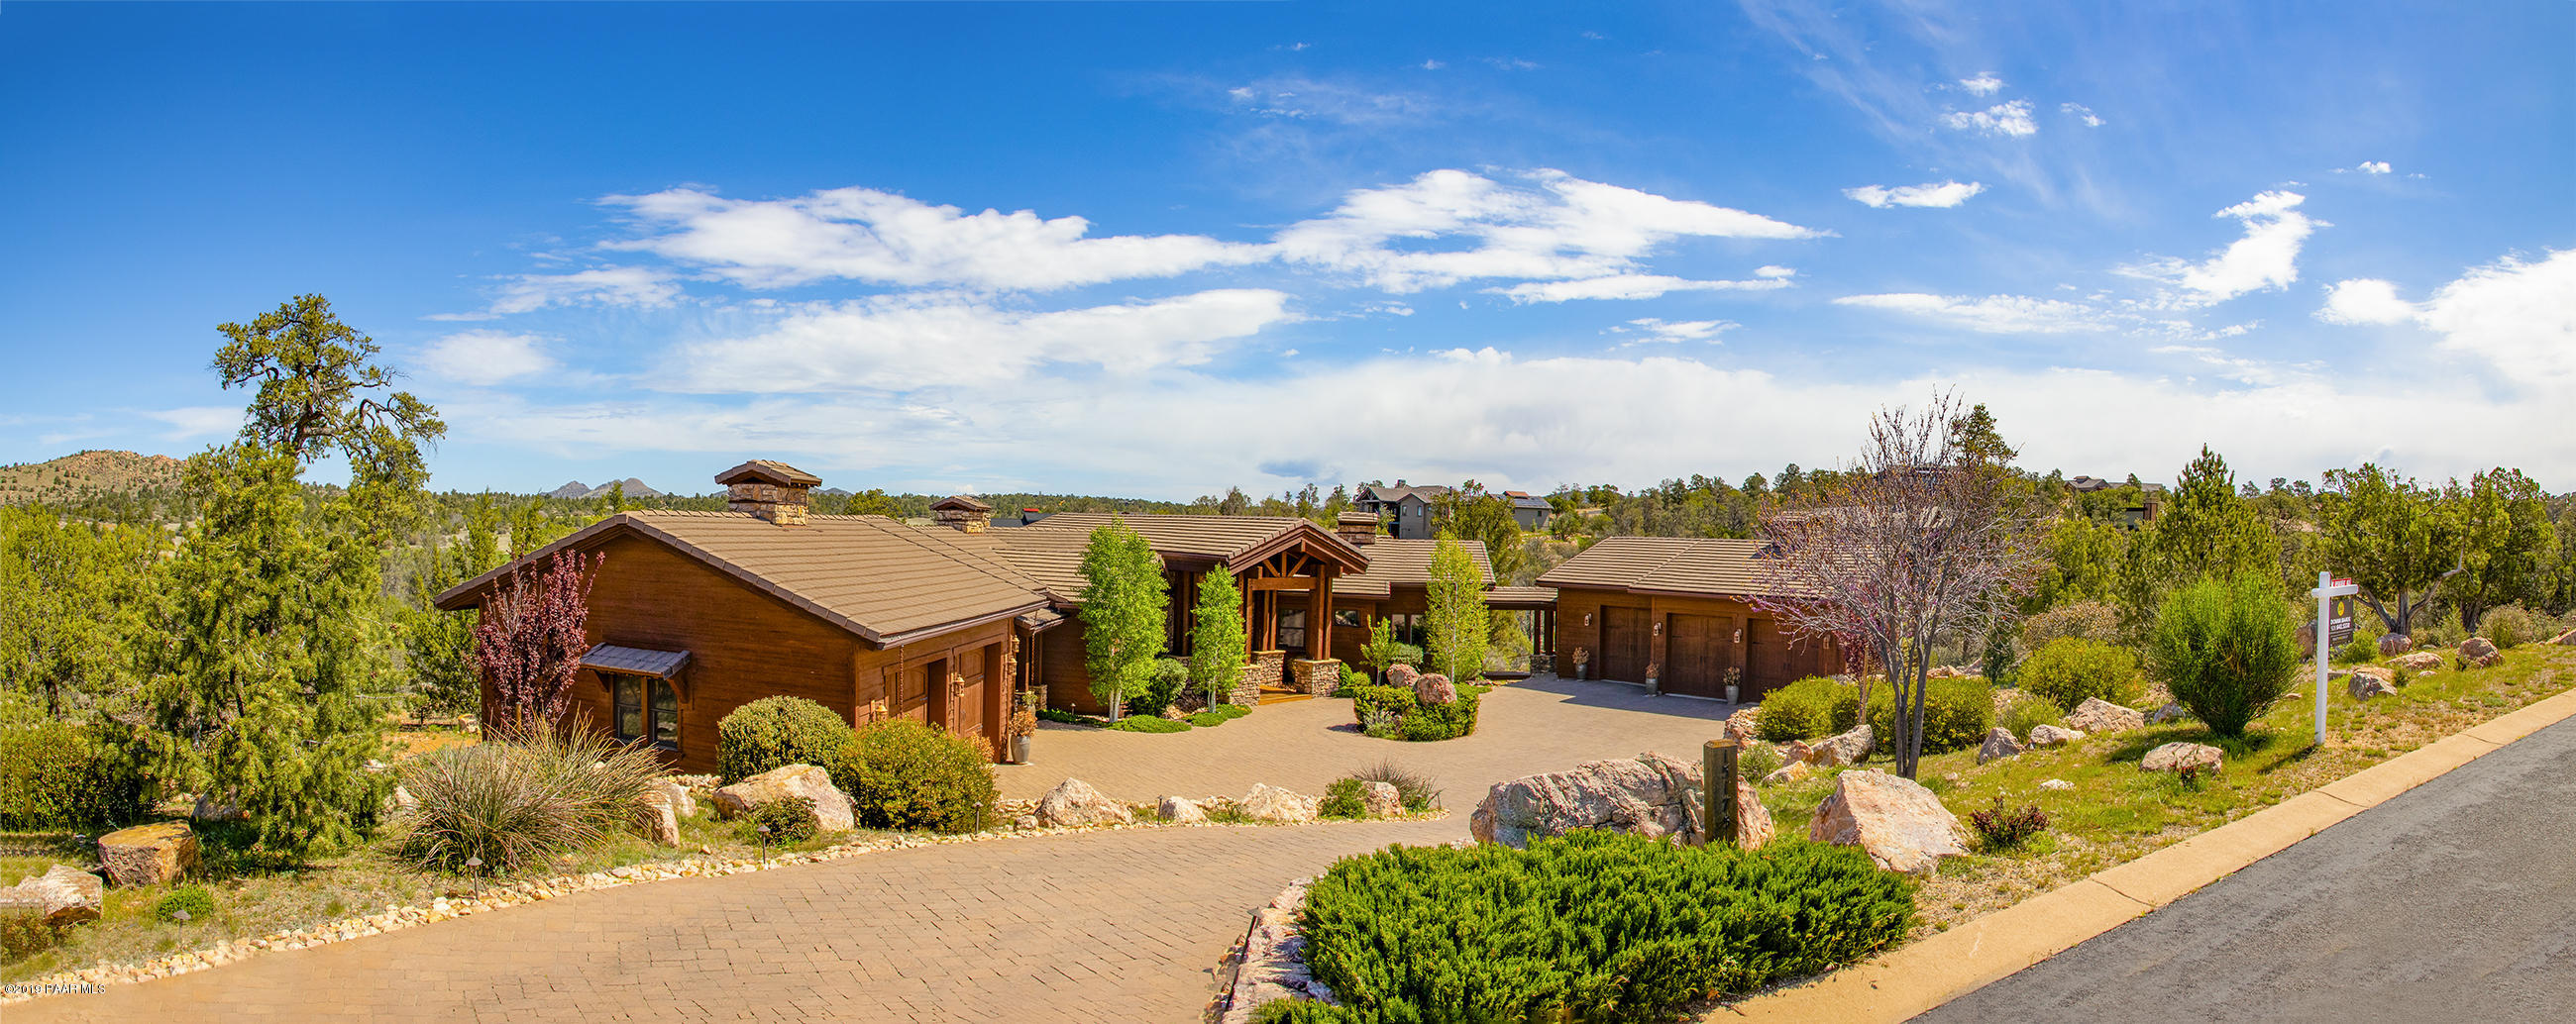 15175  Four Mile Creek Lane, Prescott, Arizona